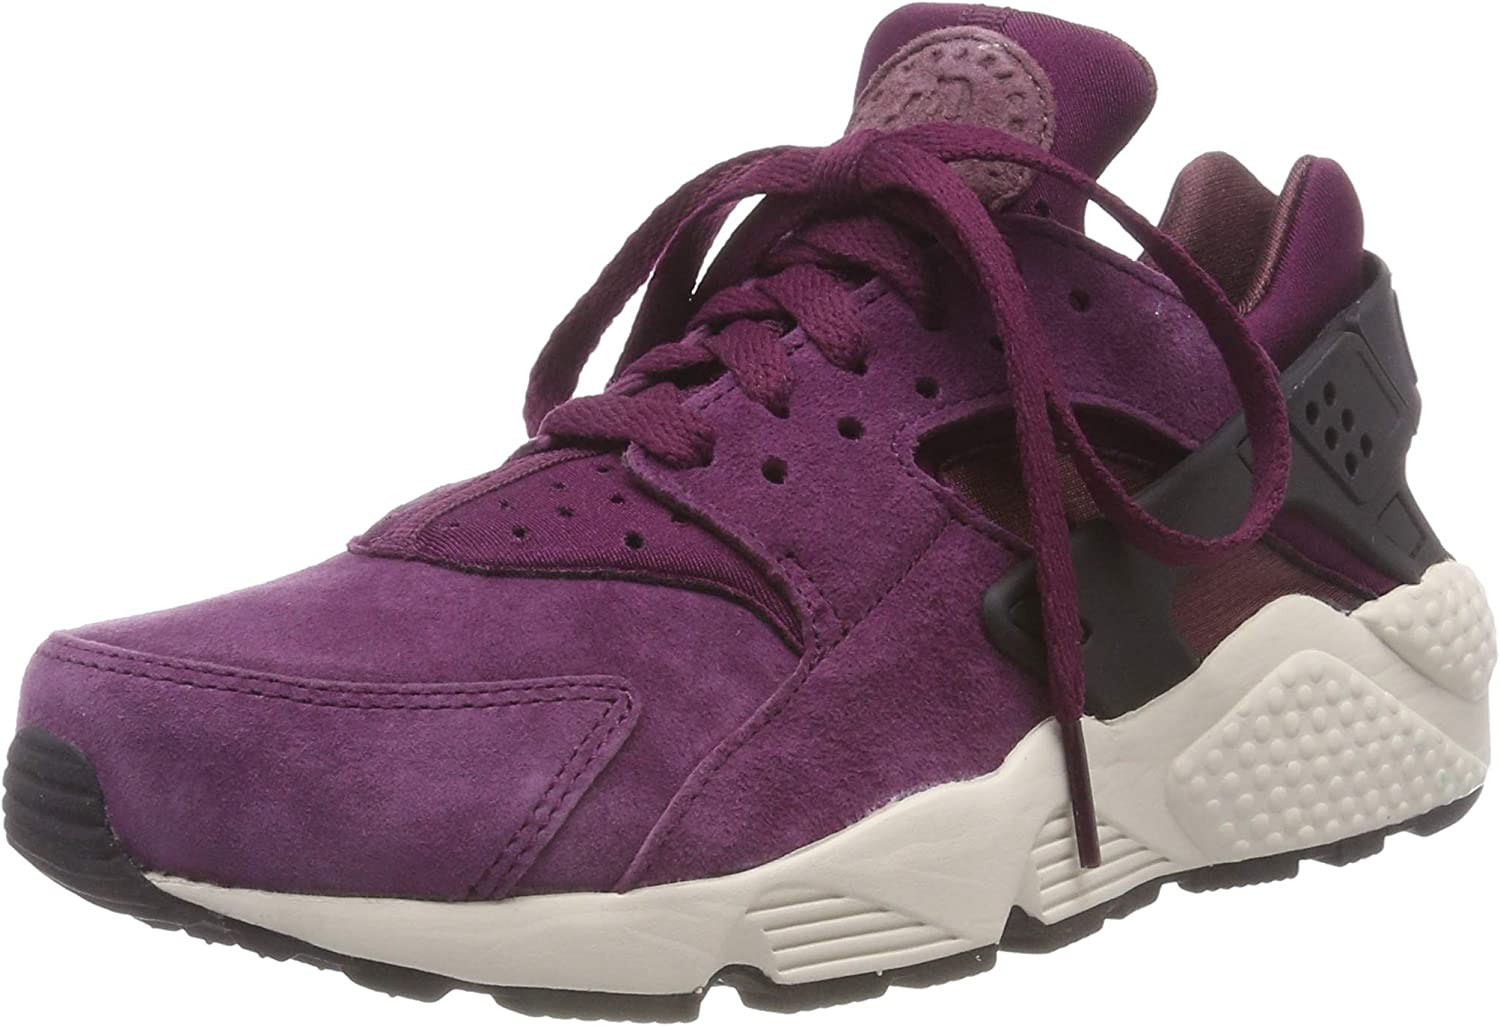 Nike Air Huarache Run PRM, Men s Gymnastics Shoes 10.5 M US, Bordeaux Black Lite Bone